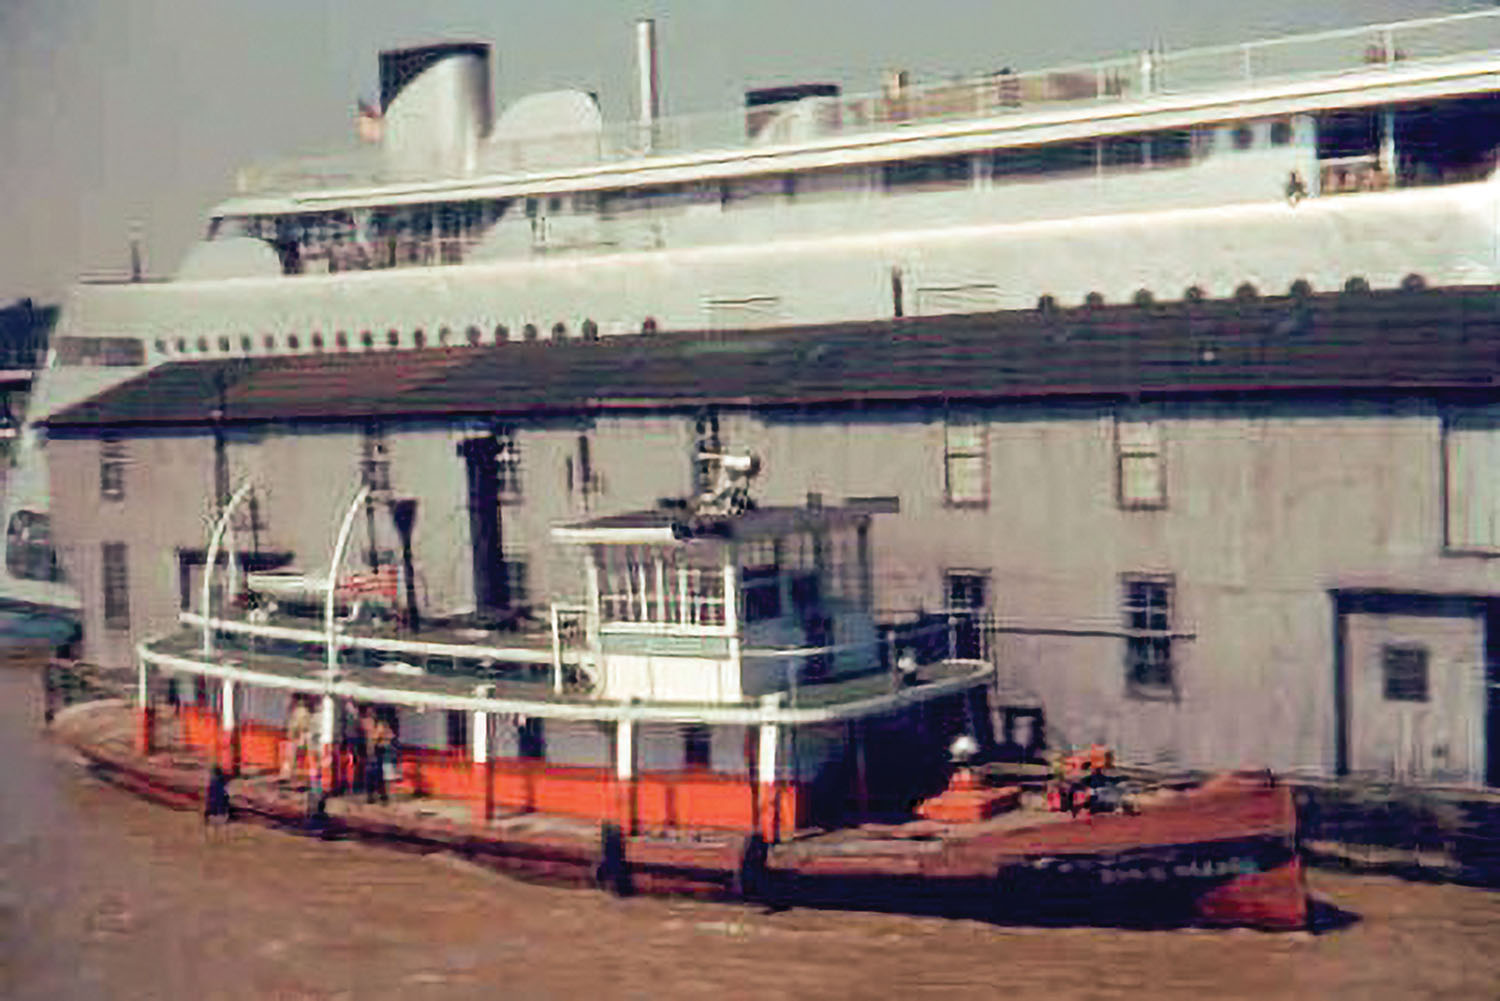 The Susie Hazard alongside the Streckfus work barge and the Admiral at St. Louis. (Keith Norrington collection)